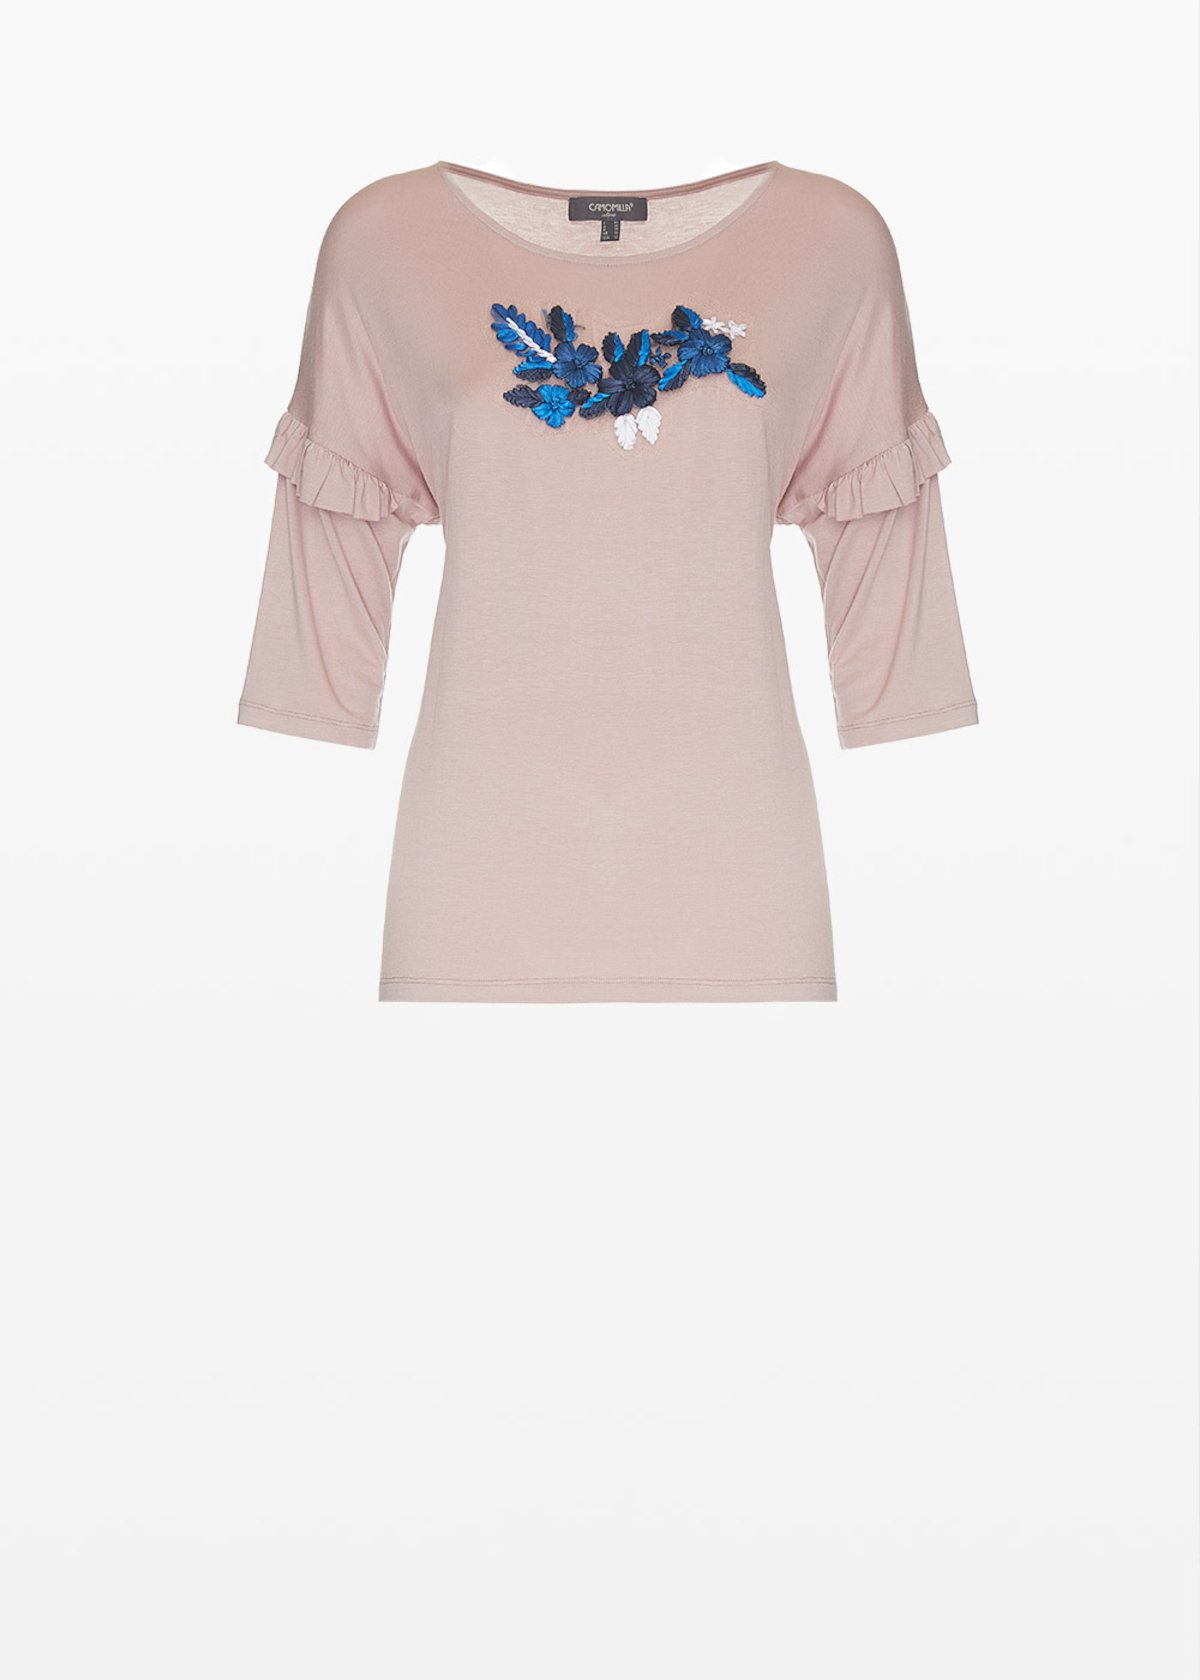 Shady jersey t-shirt with embroidered flowers on the front - Calcite - Woman